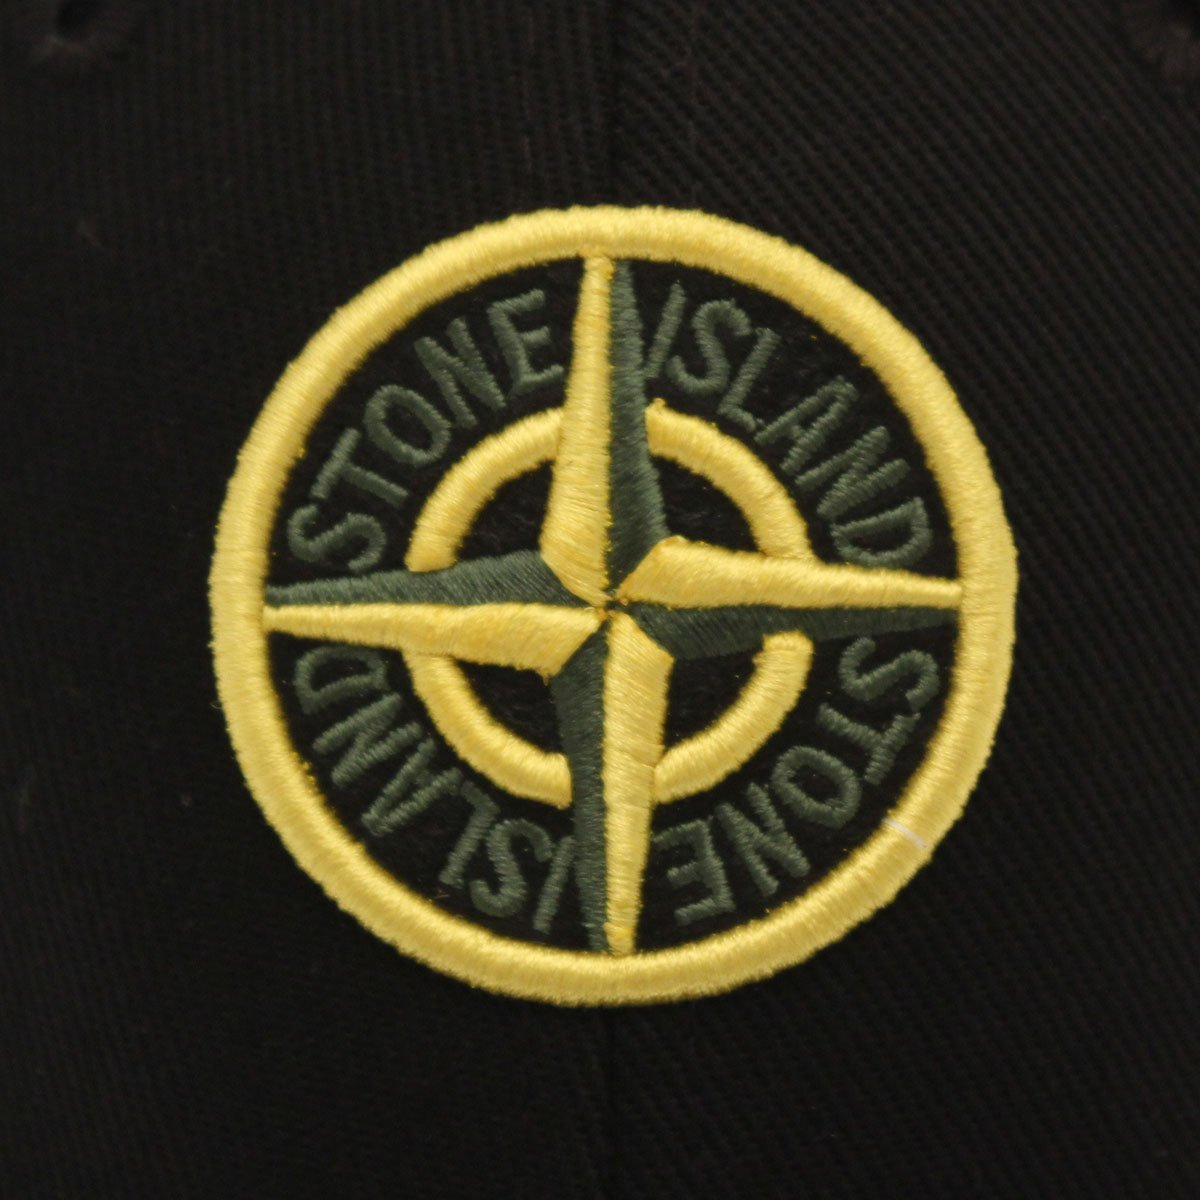 stone island logo baseball cap stone island from the menswear site uk. Black Bedroom Furniture Sets. Home Design Ideas